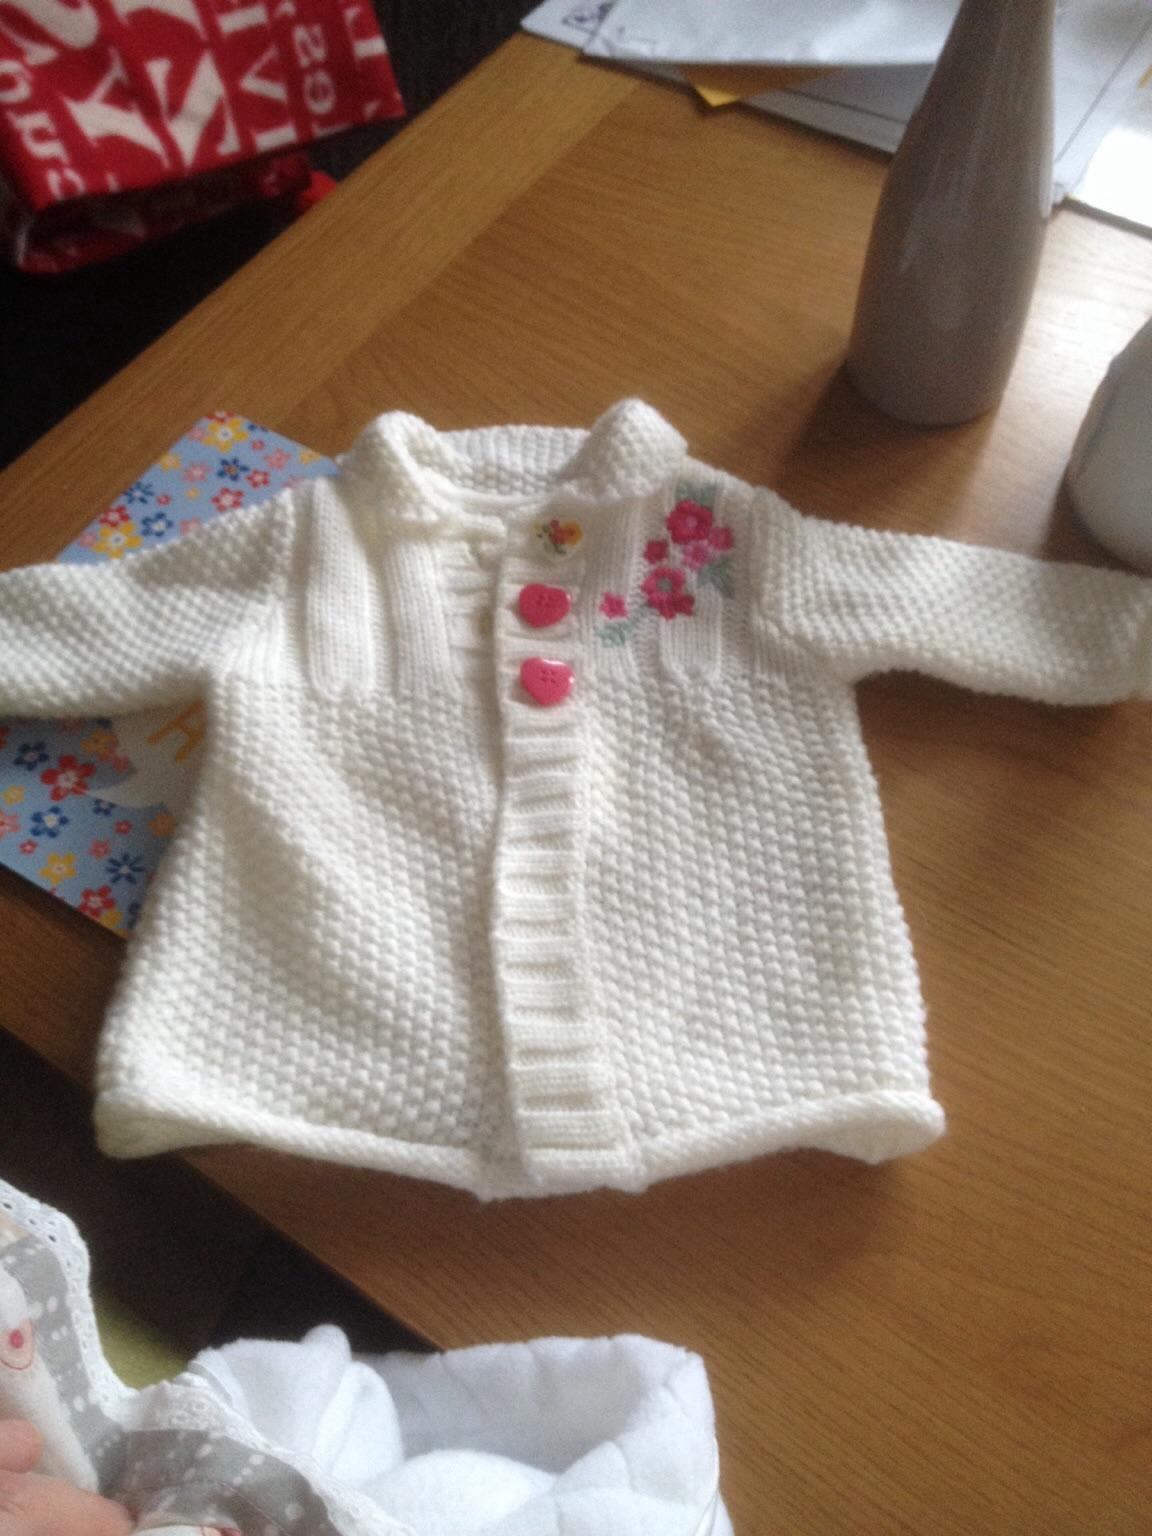 Used Baby clothes first size in B31 Birmingham for £ 1 50